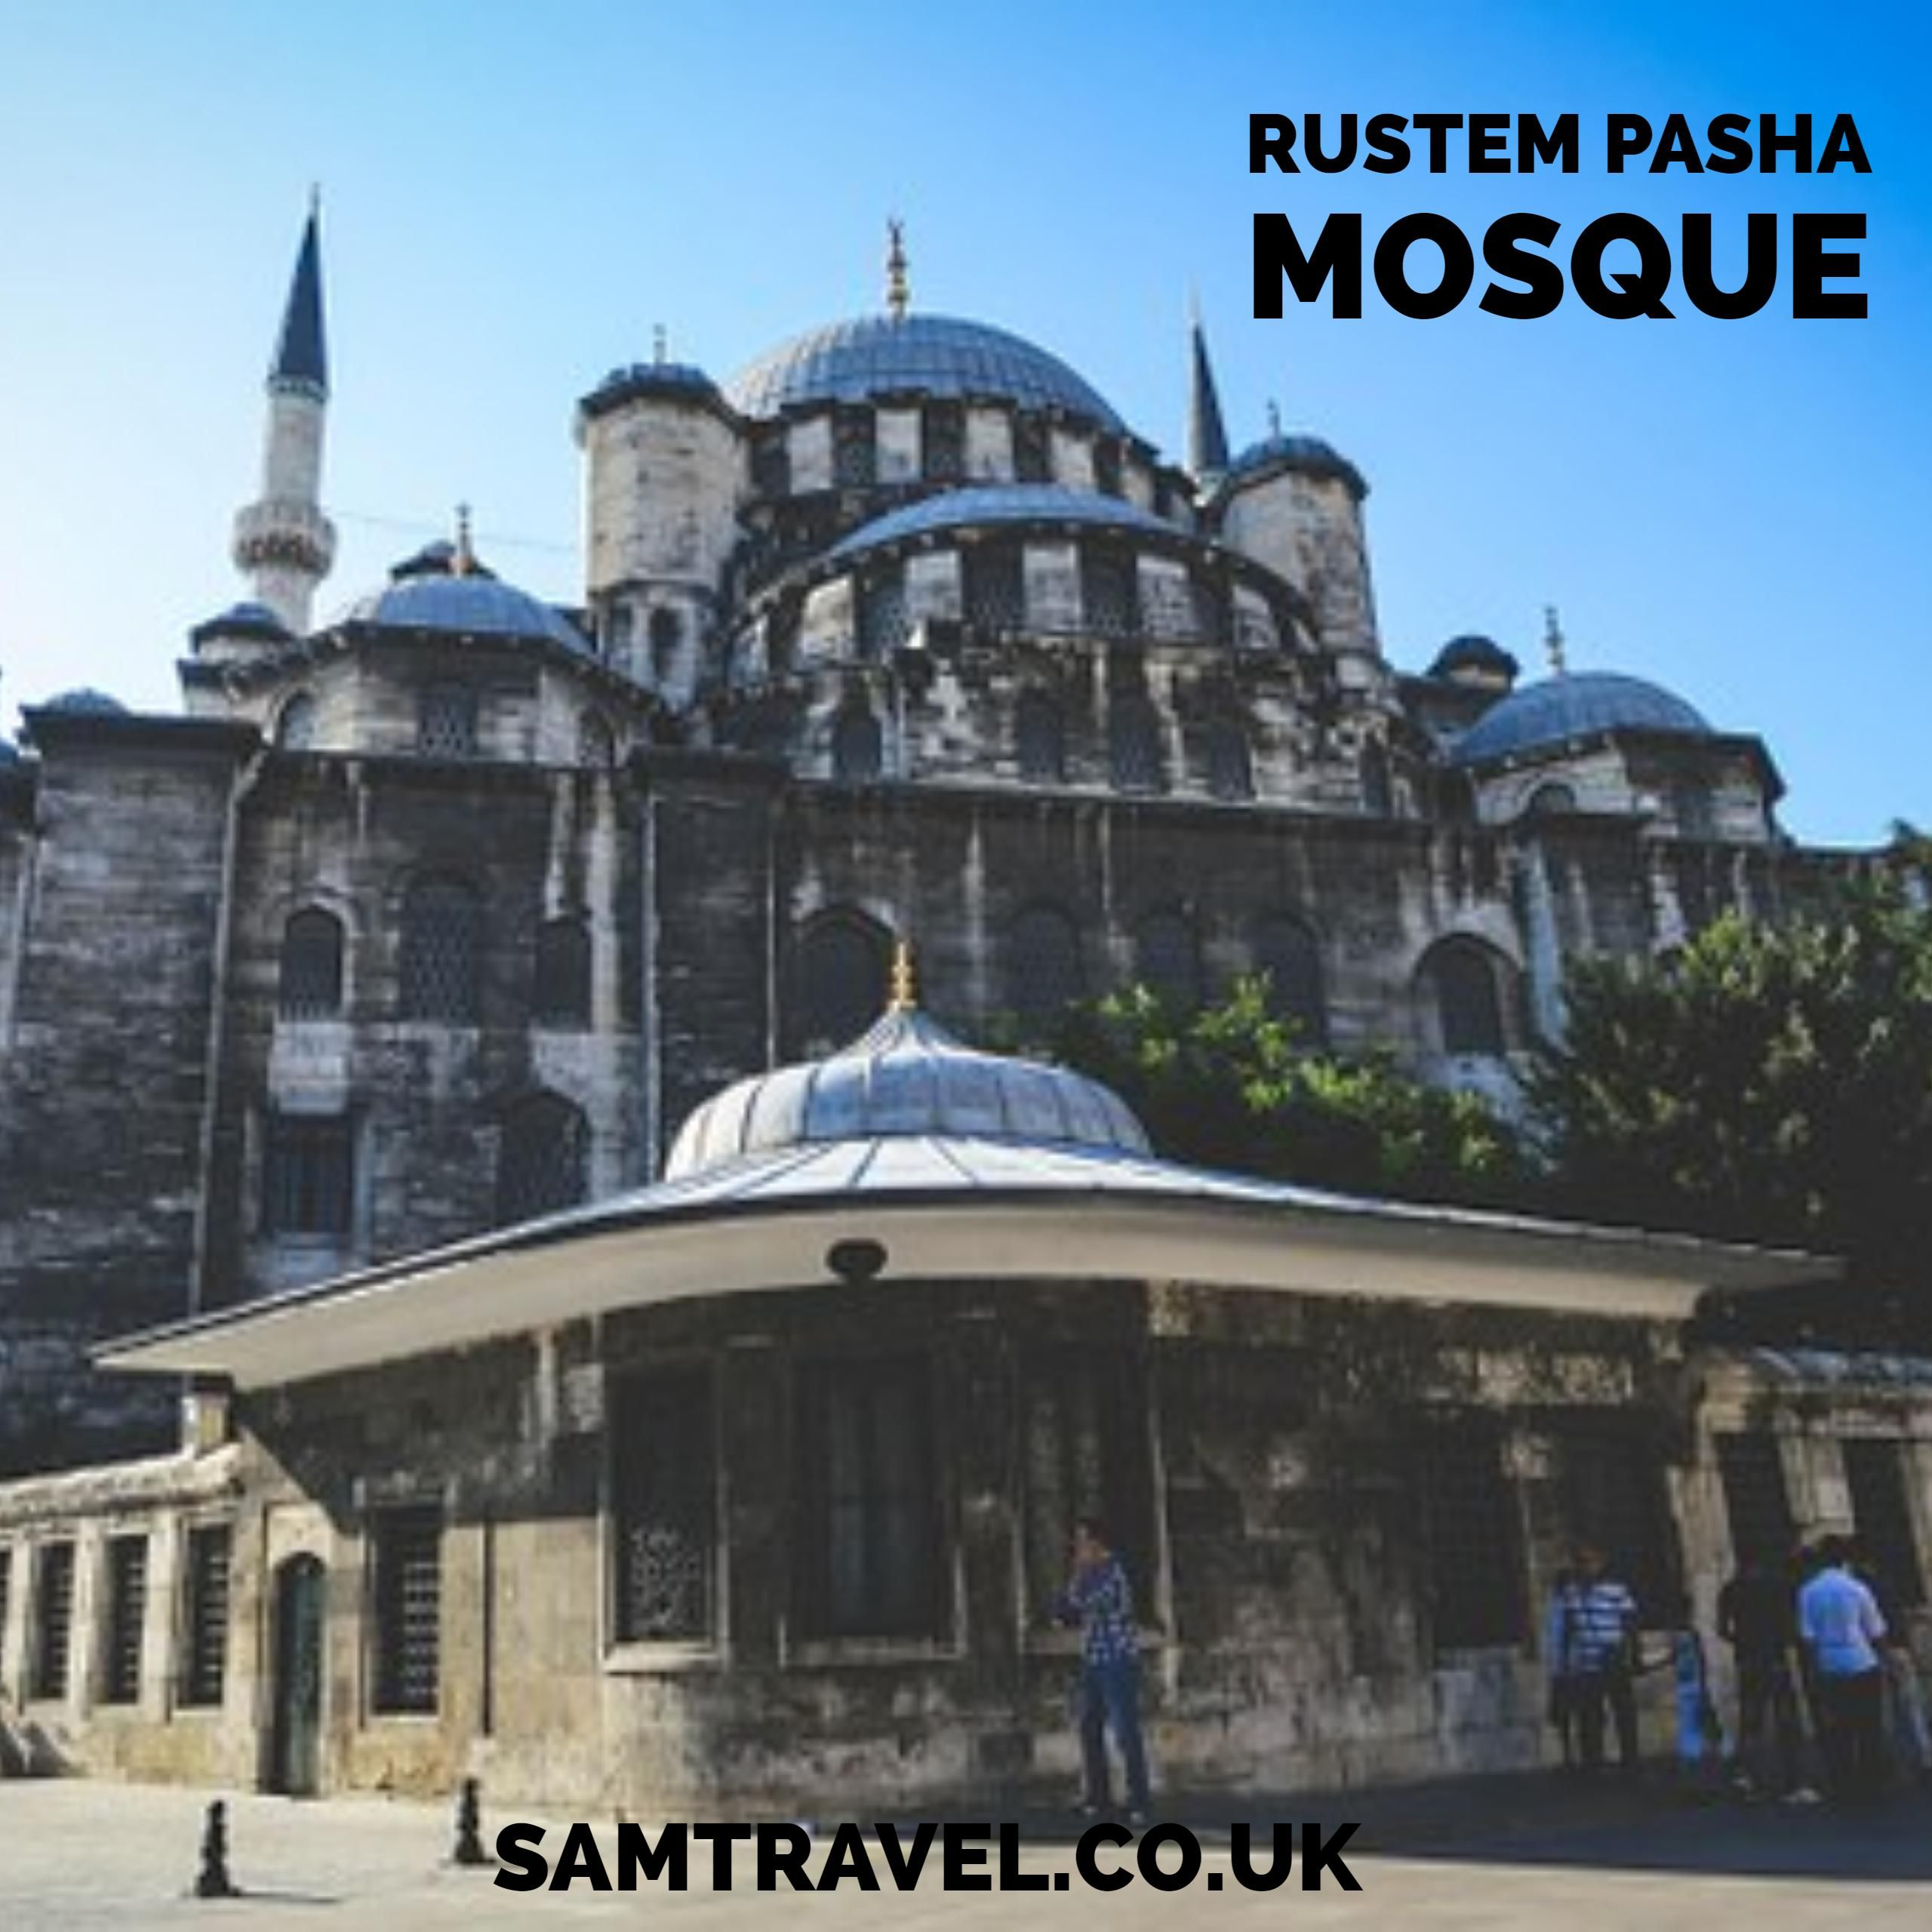 The Rustem Pasha Mosque Is A 16th Century Ottoman Mosque Located In